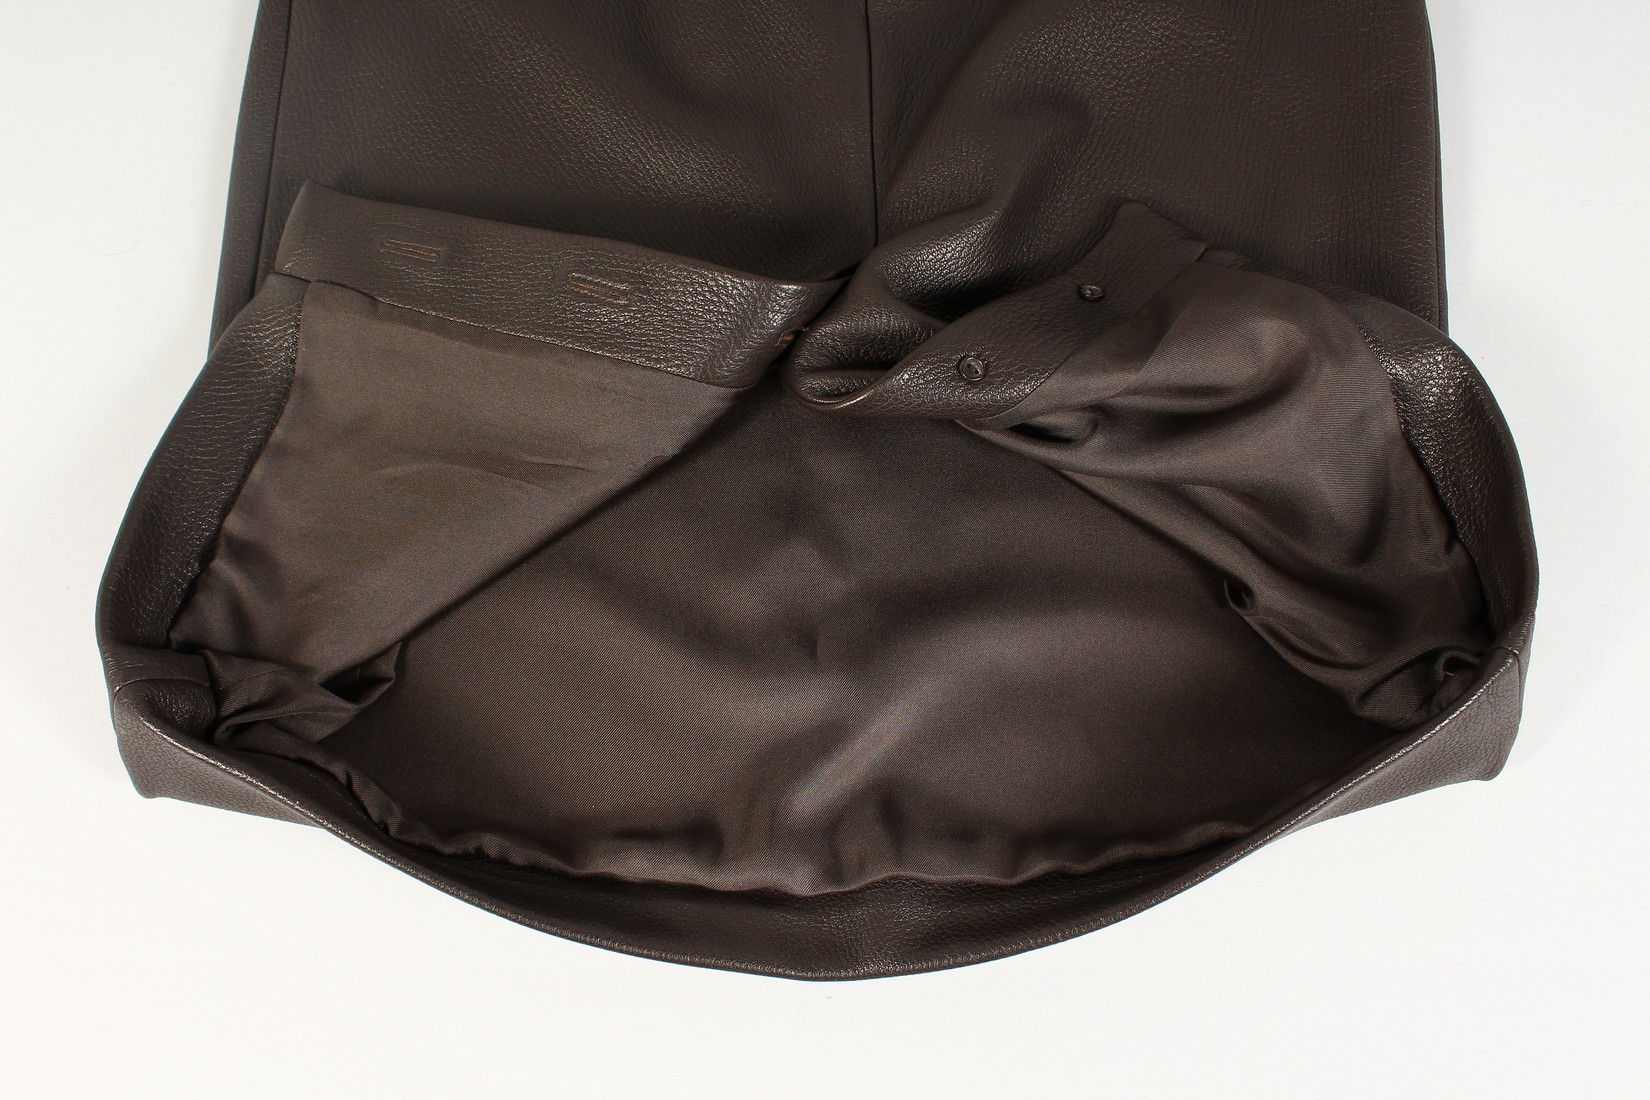 A HERMES LEATHER SKIRT, never worn. - Image 5 of 6